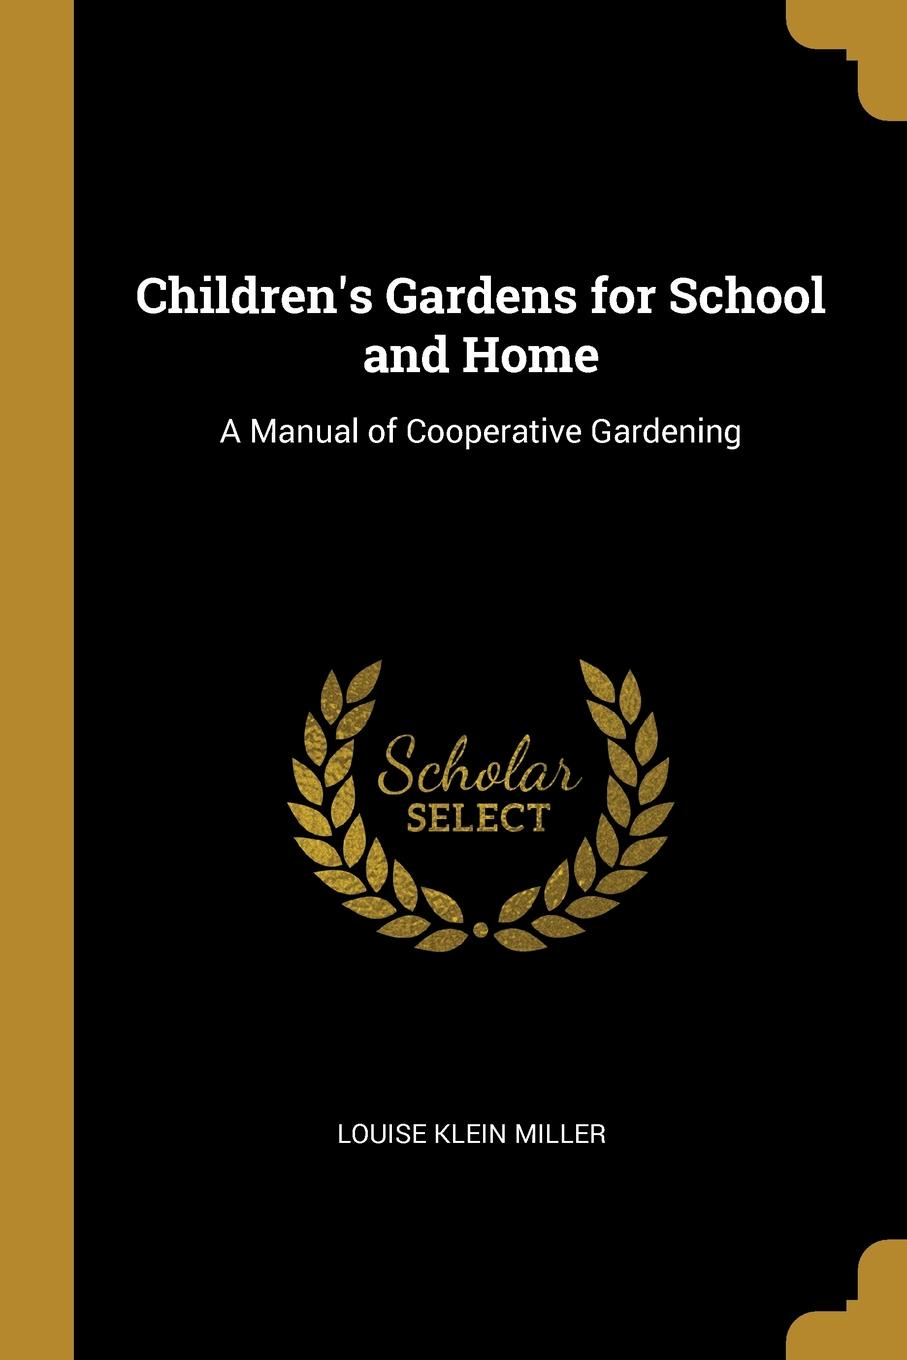 Louise Klein Miller. Children.s Gardens for School and Home. A Manual of Cooperative Gardening